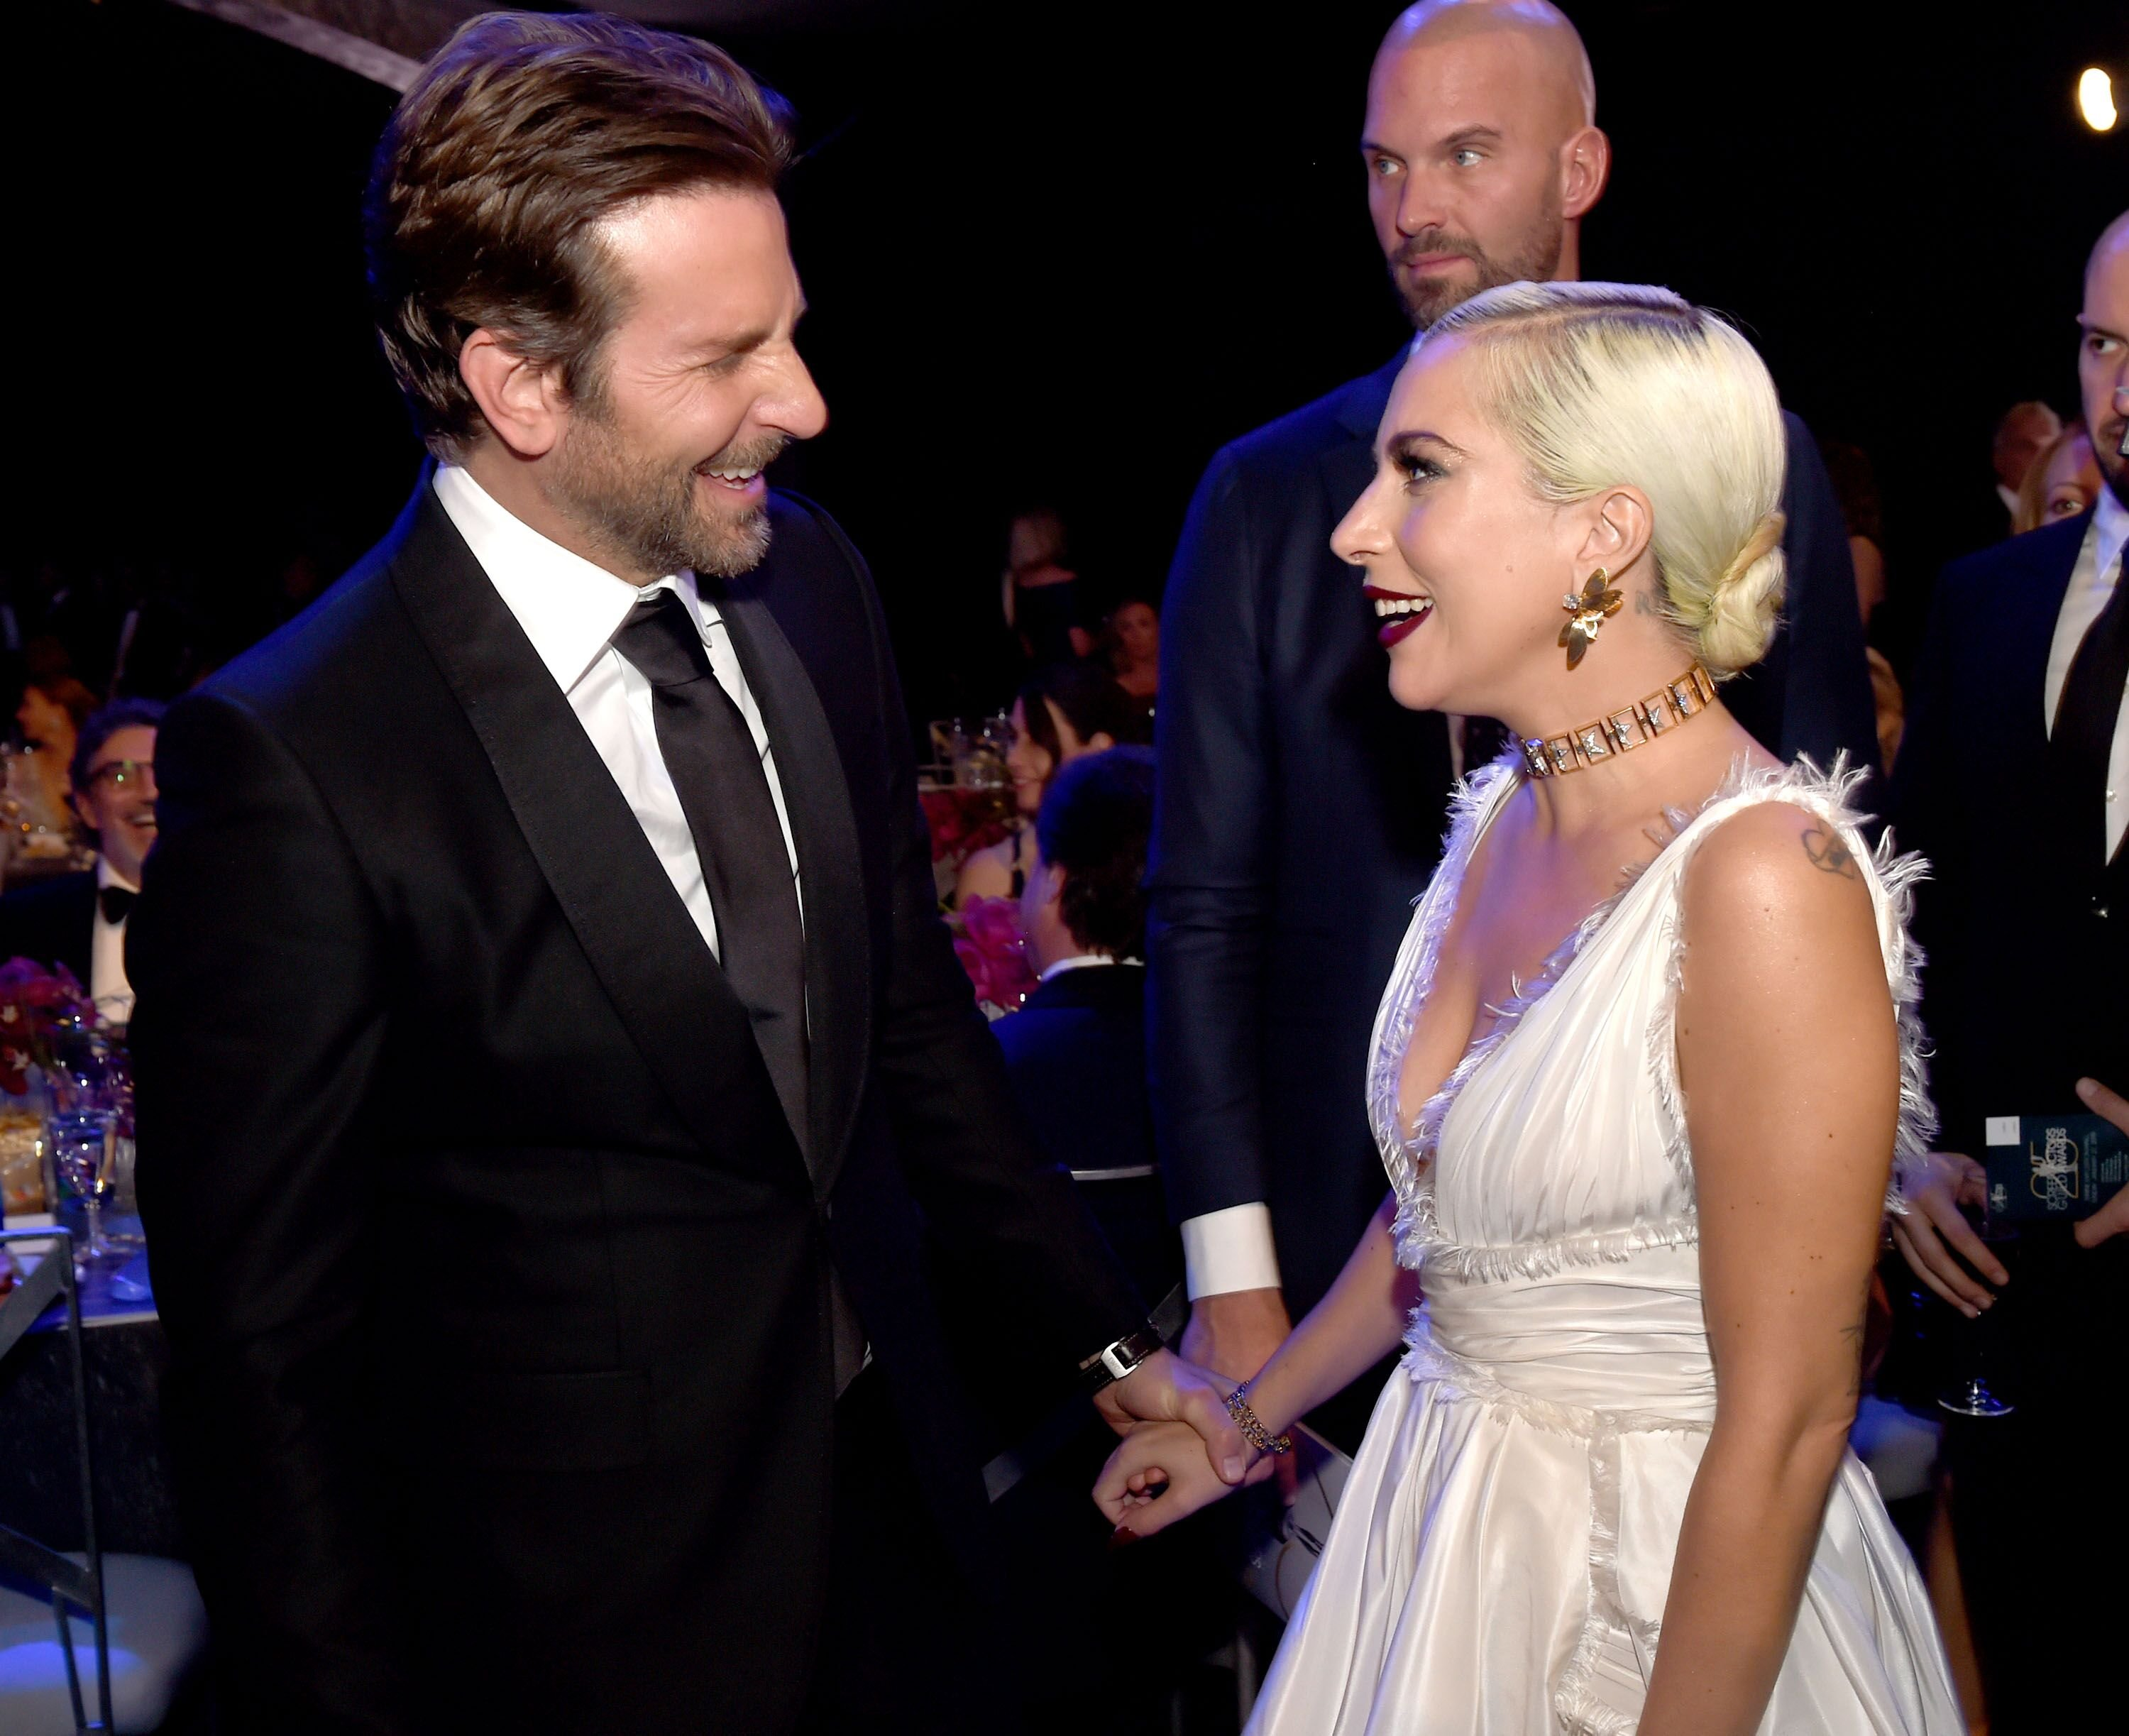 Bradley Cooper and Lady Gaga. | Source: Getty Images